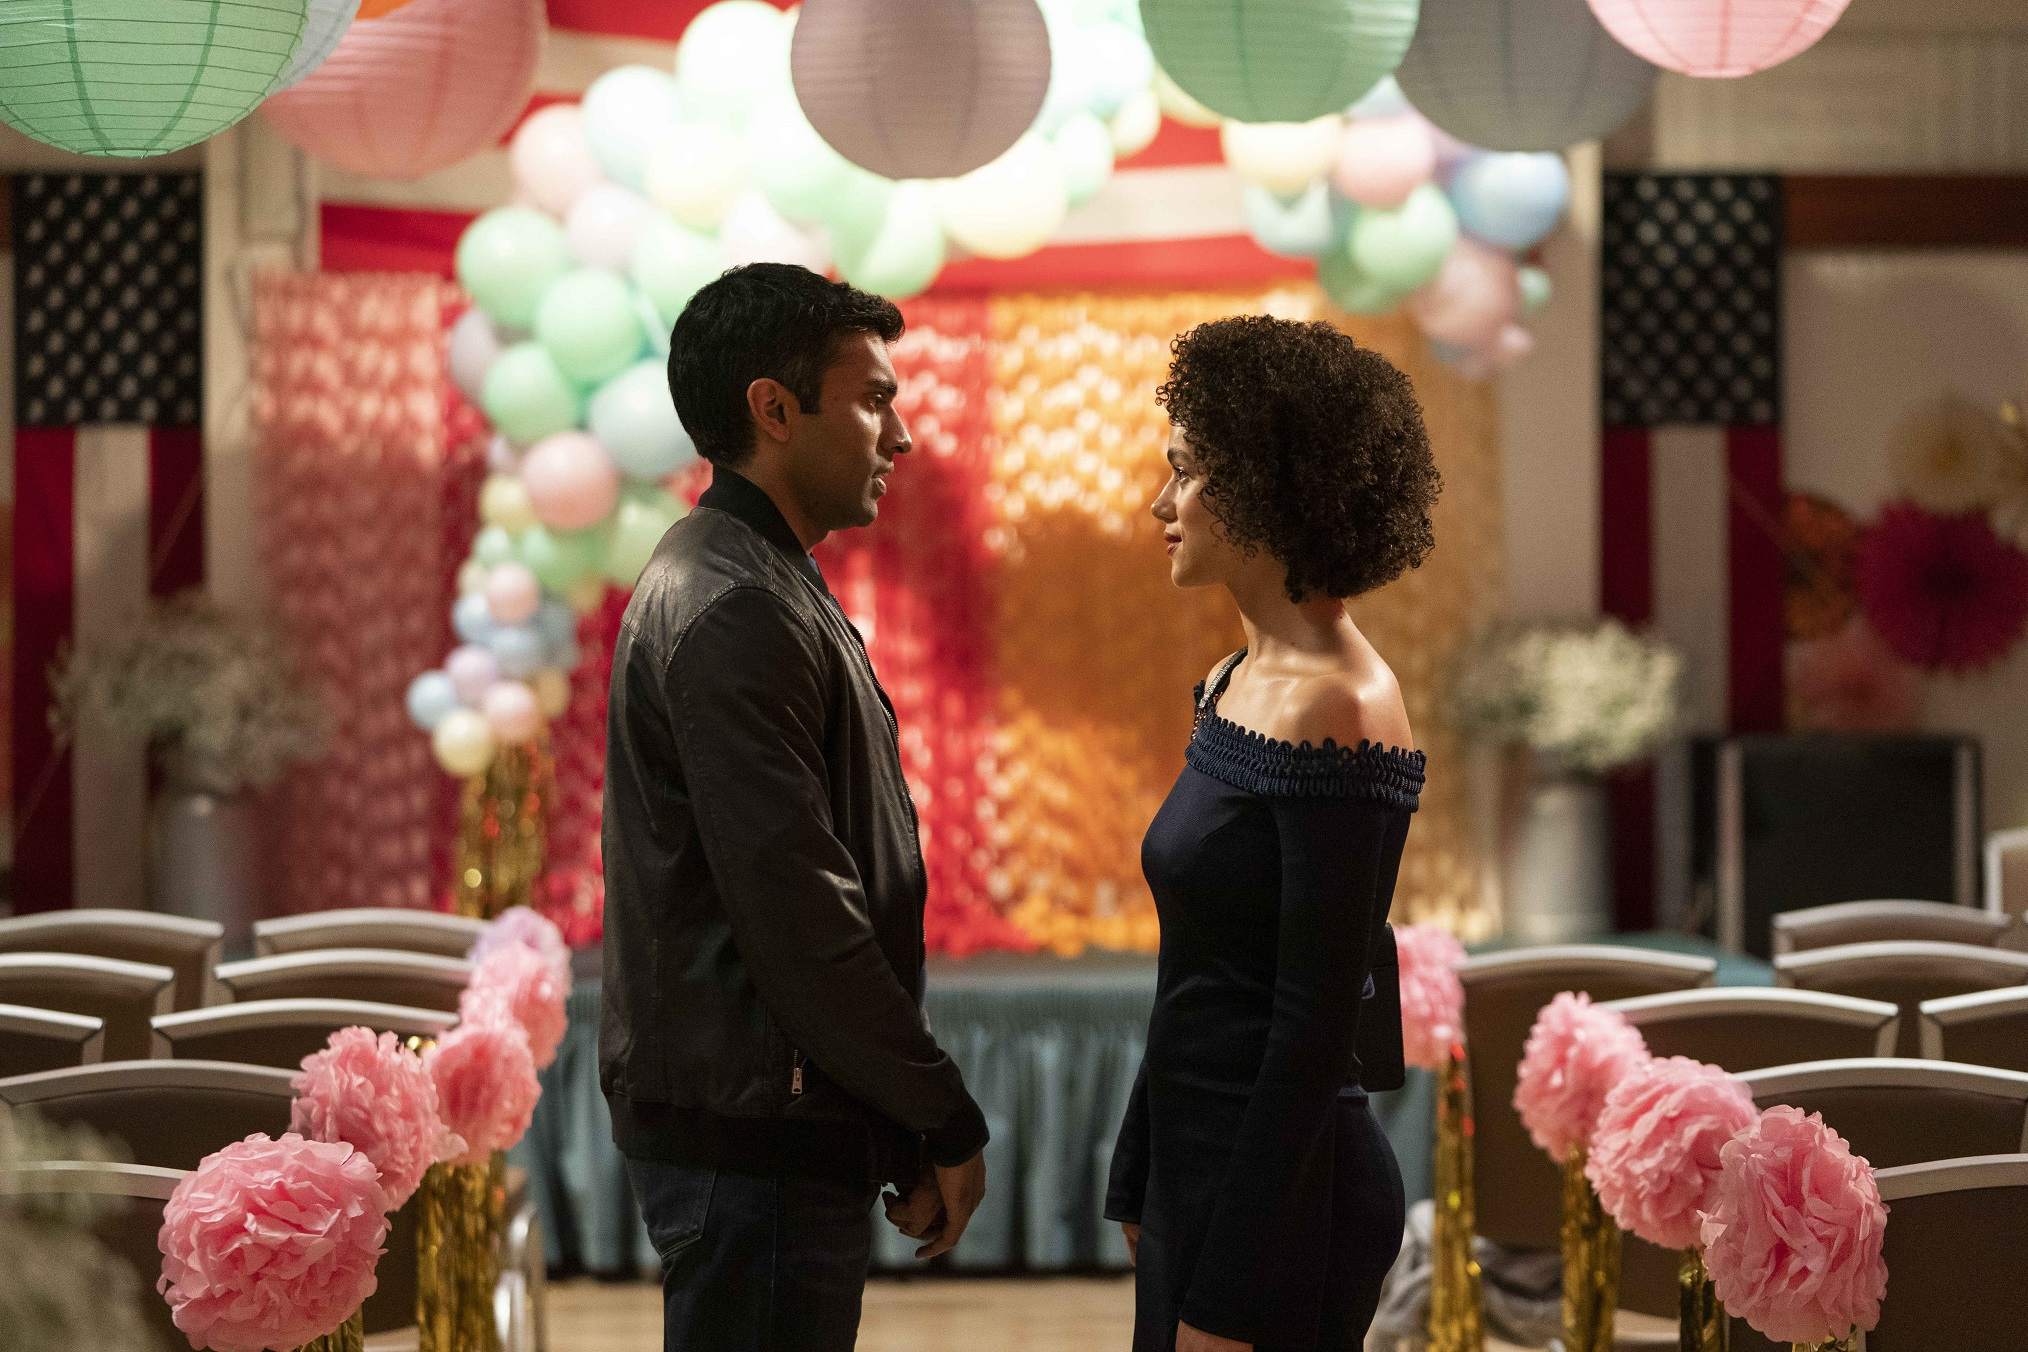 """Maya (Nathalie Emmanuel) and Kash (Nikesh Patel) of the """"Four Weddings and Funeral"""" reboot facing each other in a decorated wedding hall."""